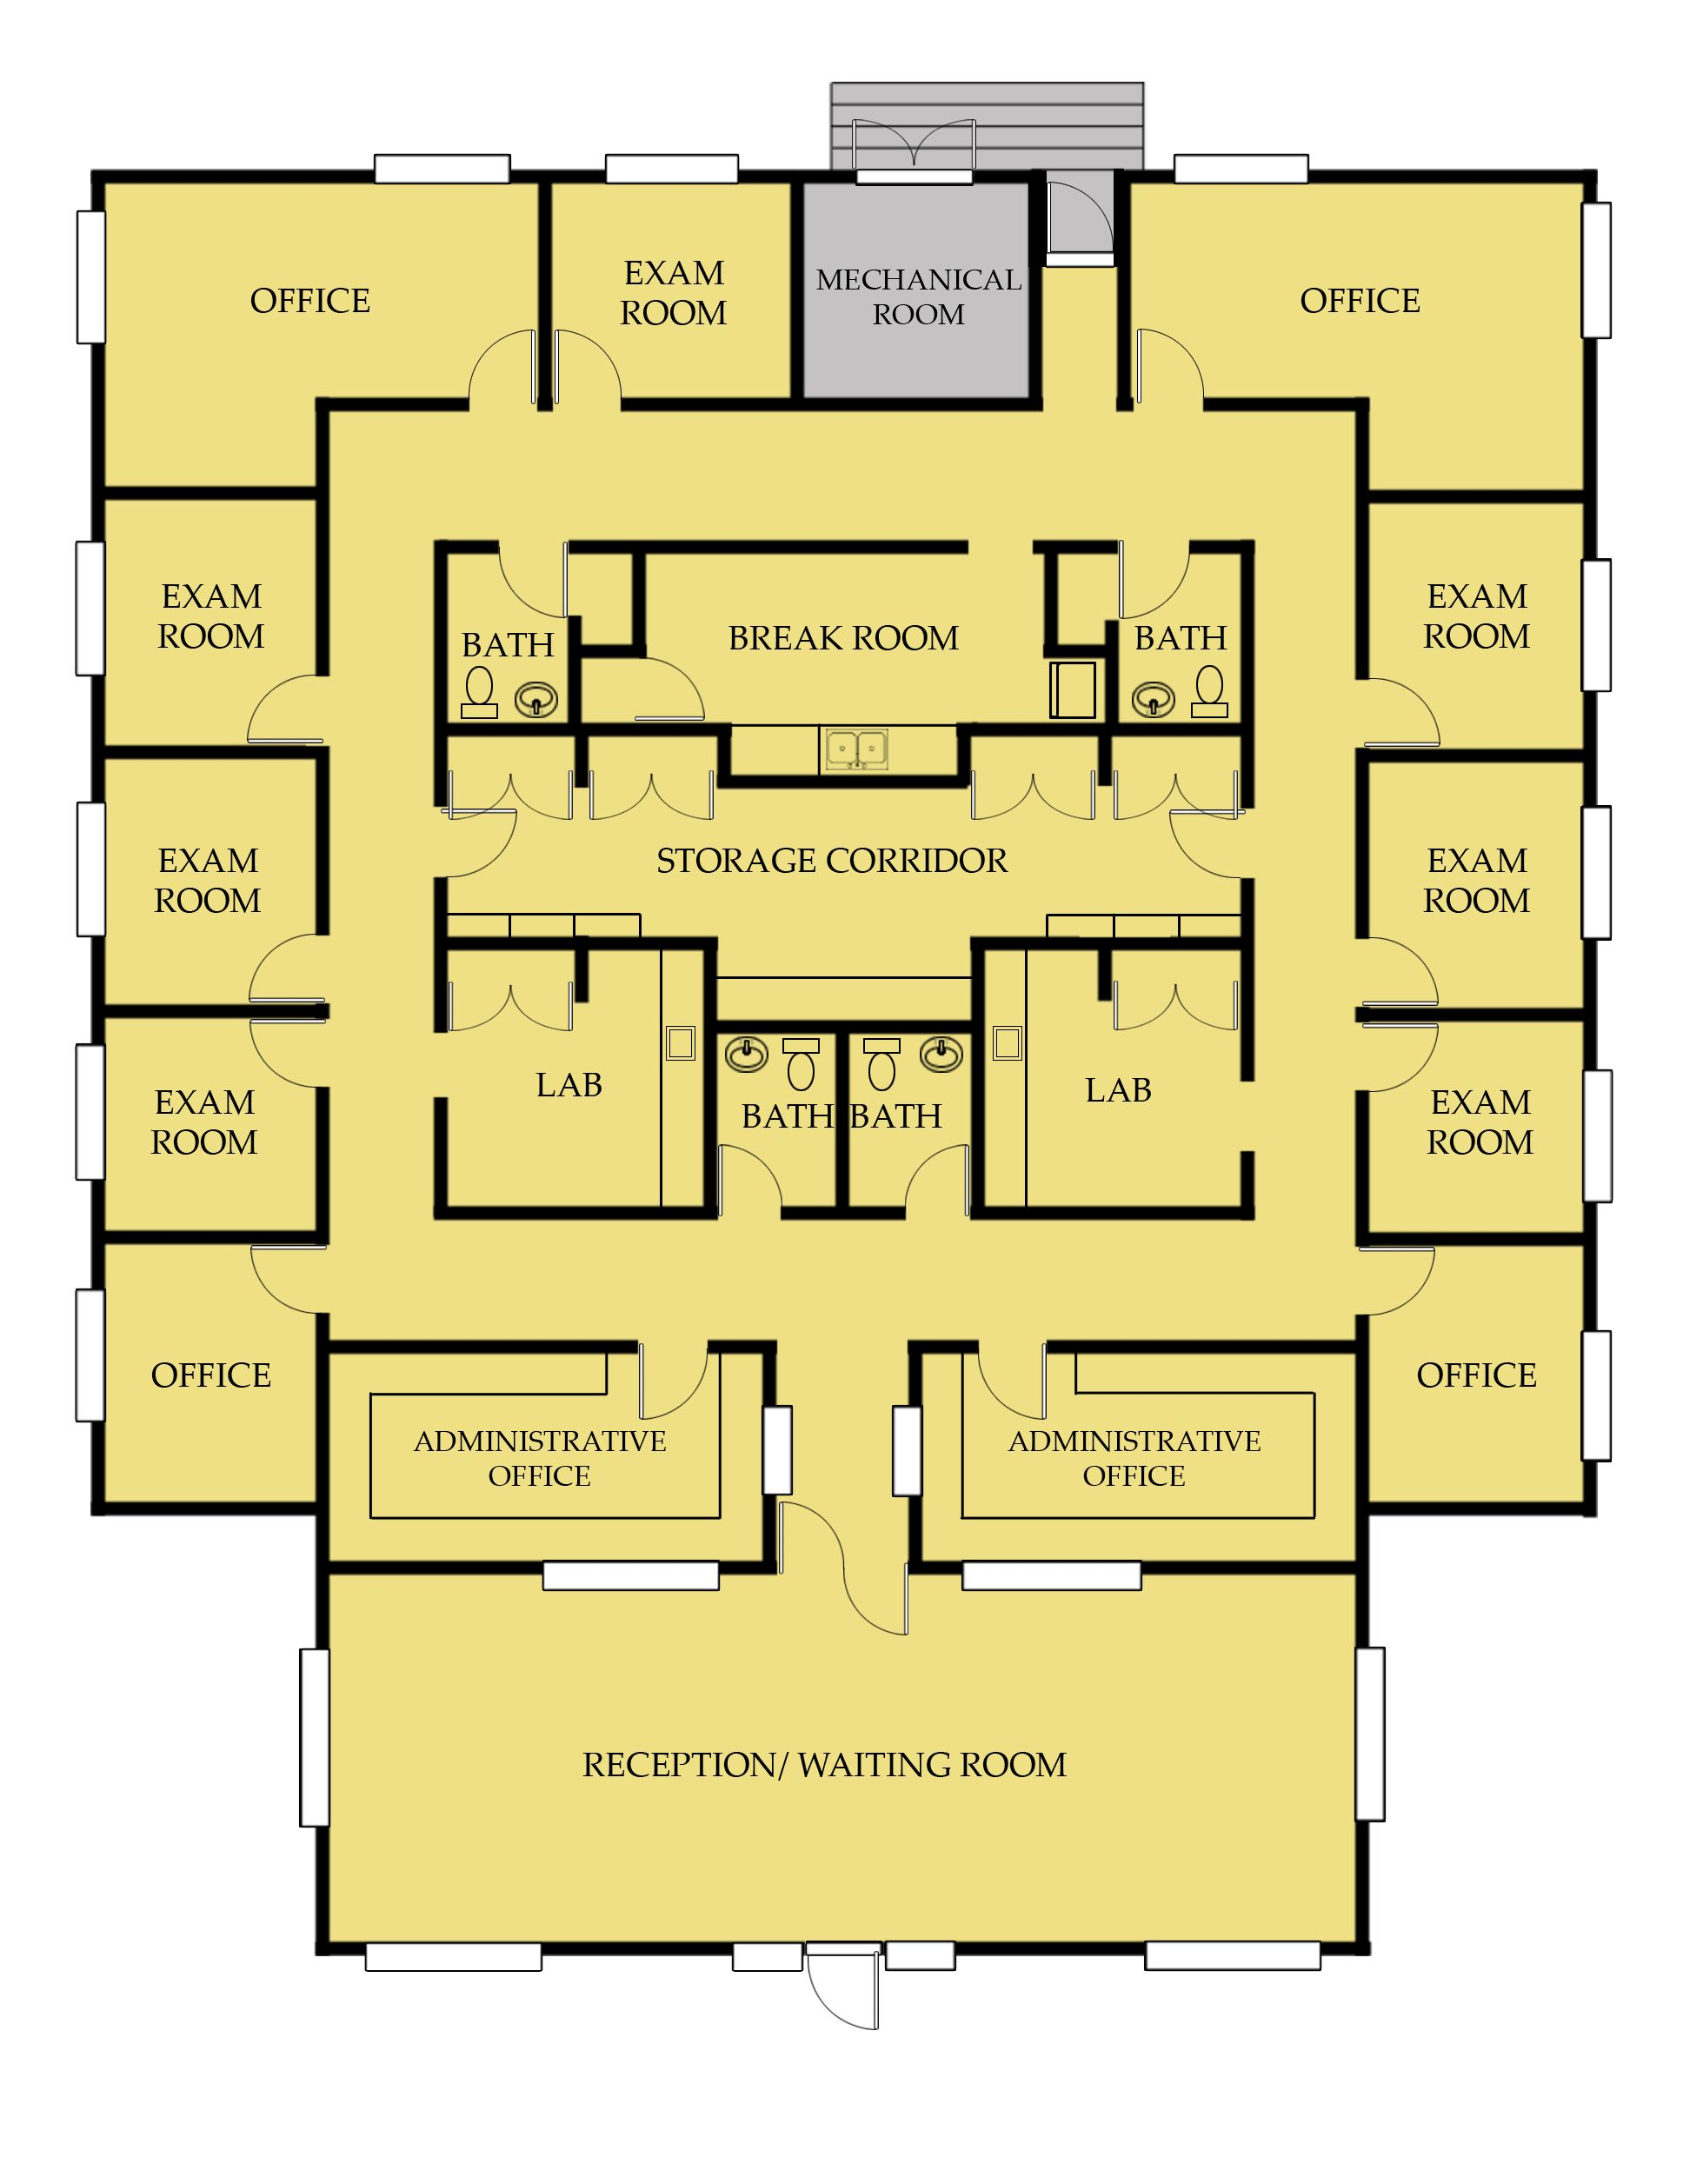 Medical office floor plan pinteres for Office layout design online